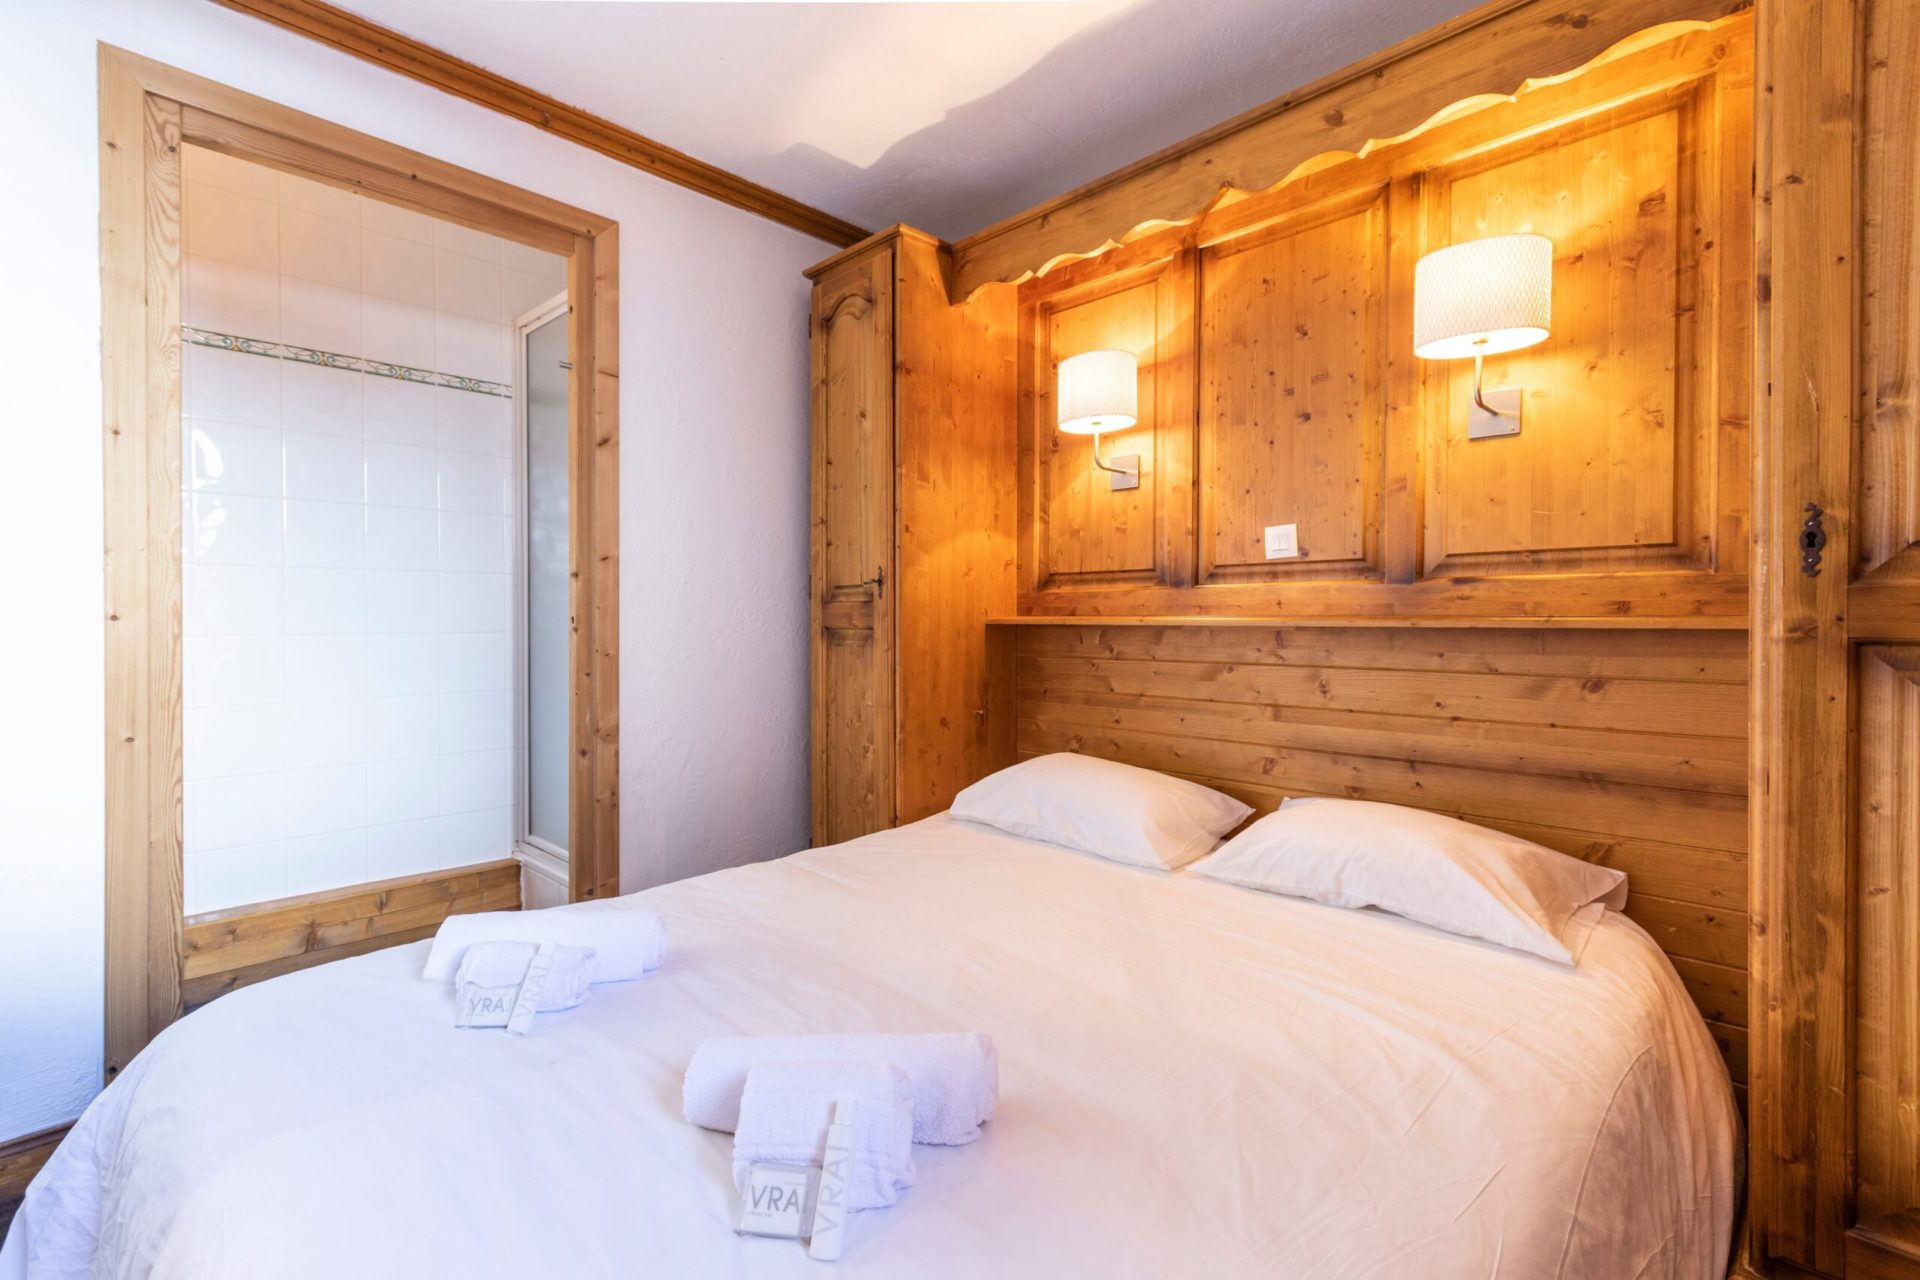 An image of a double bed in a bedroom in Chalet des Neiges Residence Hermine